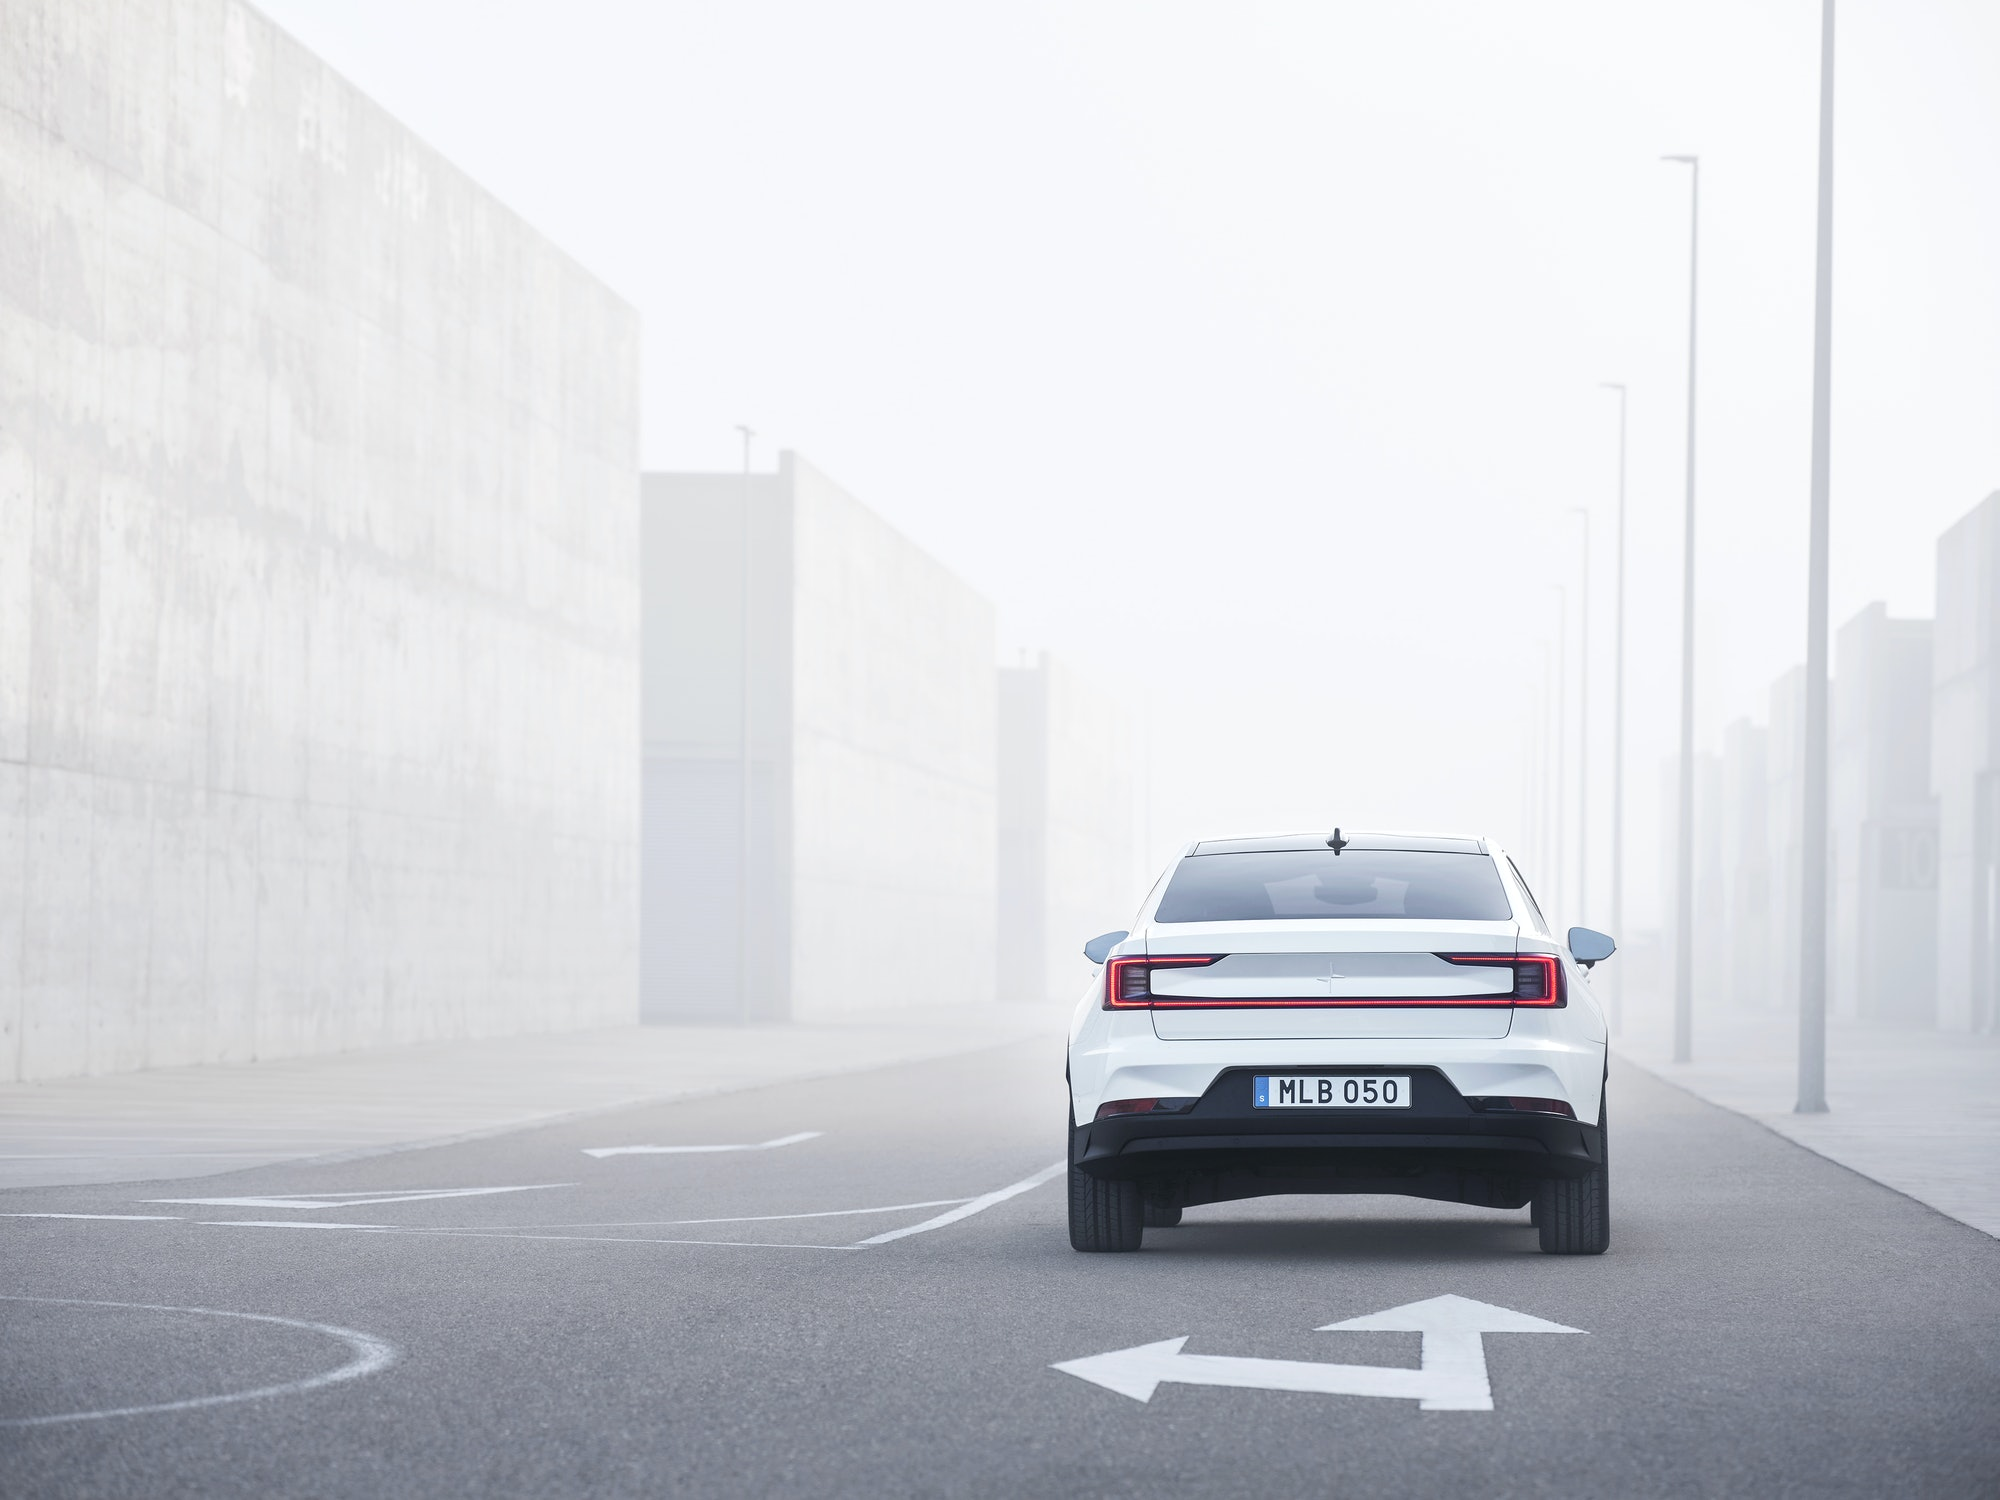 Polestar 2 driving down the road.